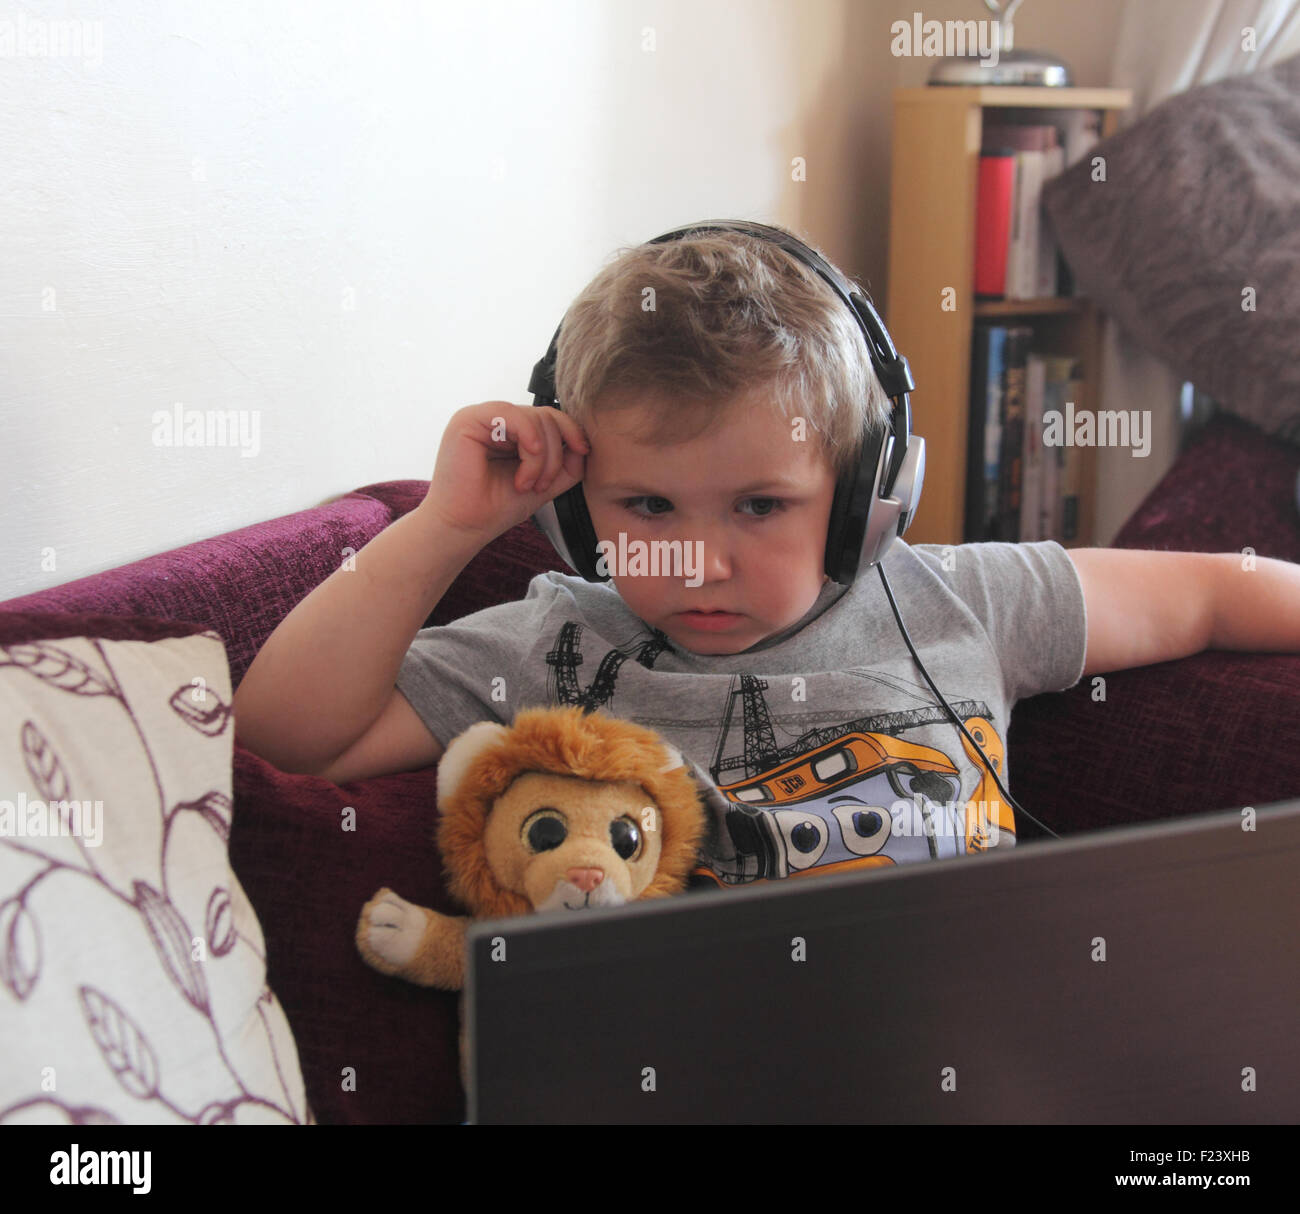 Small boy using laptop computer with headphones - Stock Image